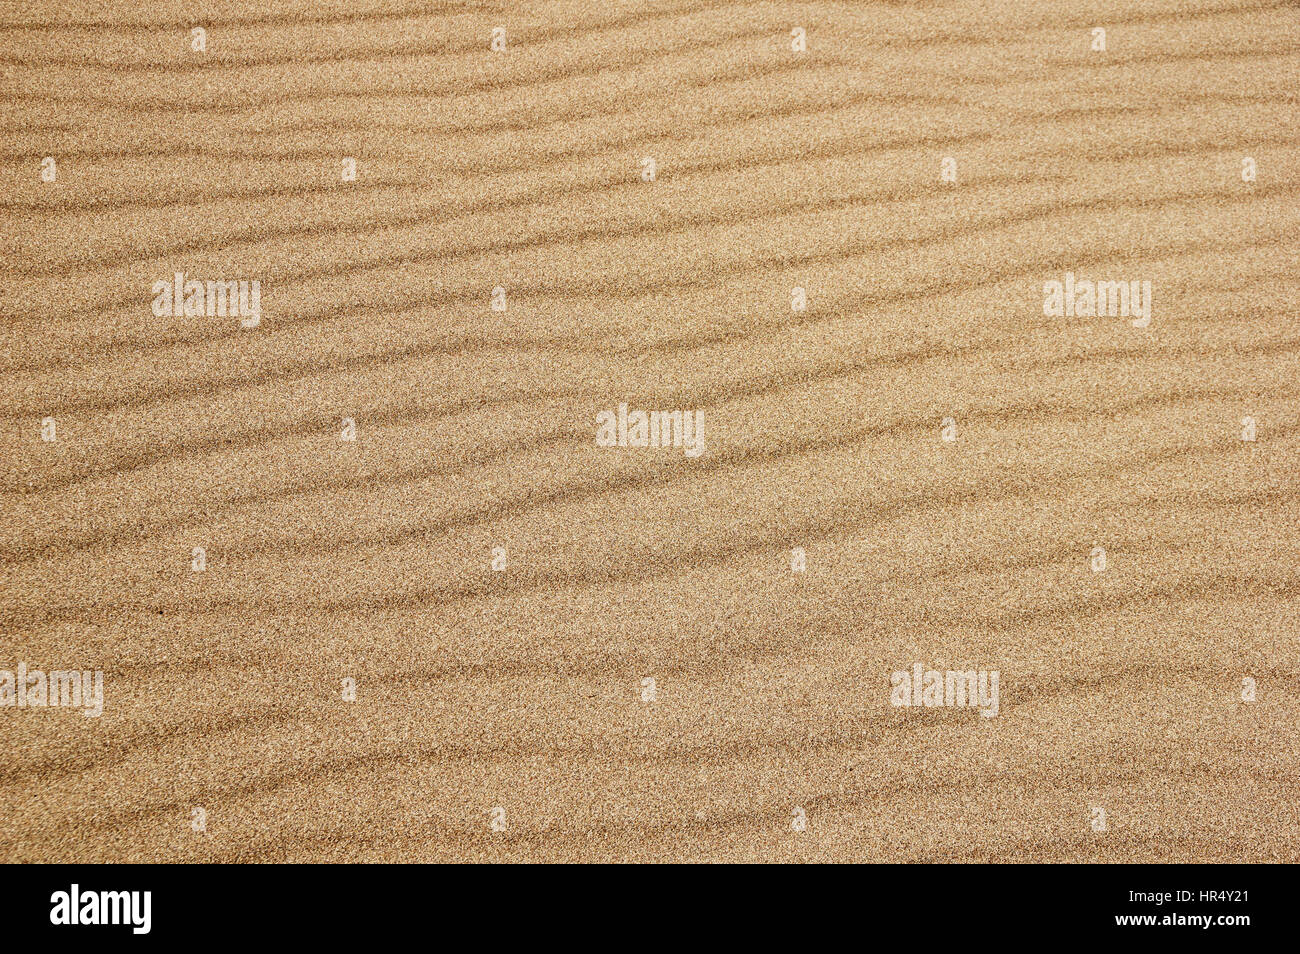 detail of rippled sand surface at great sand dunes national park - Stock Image